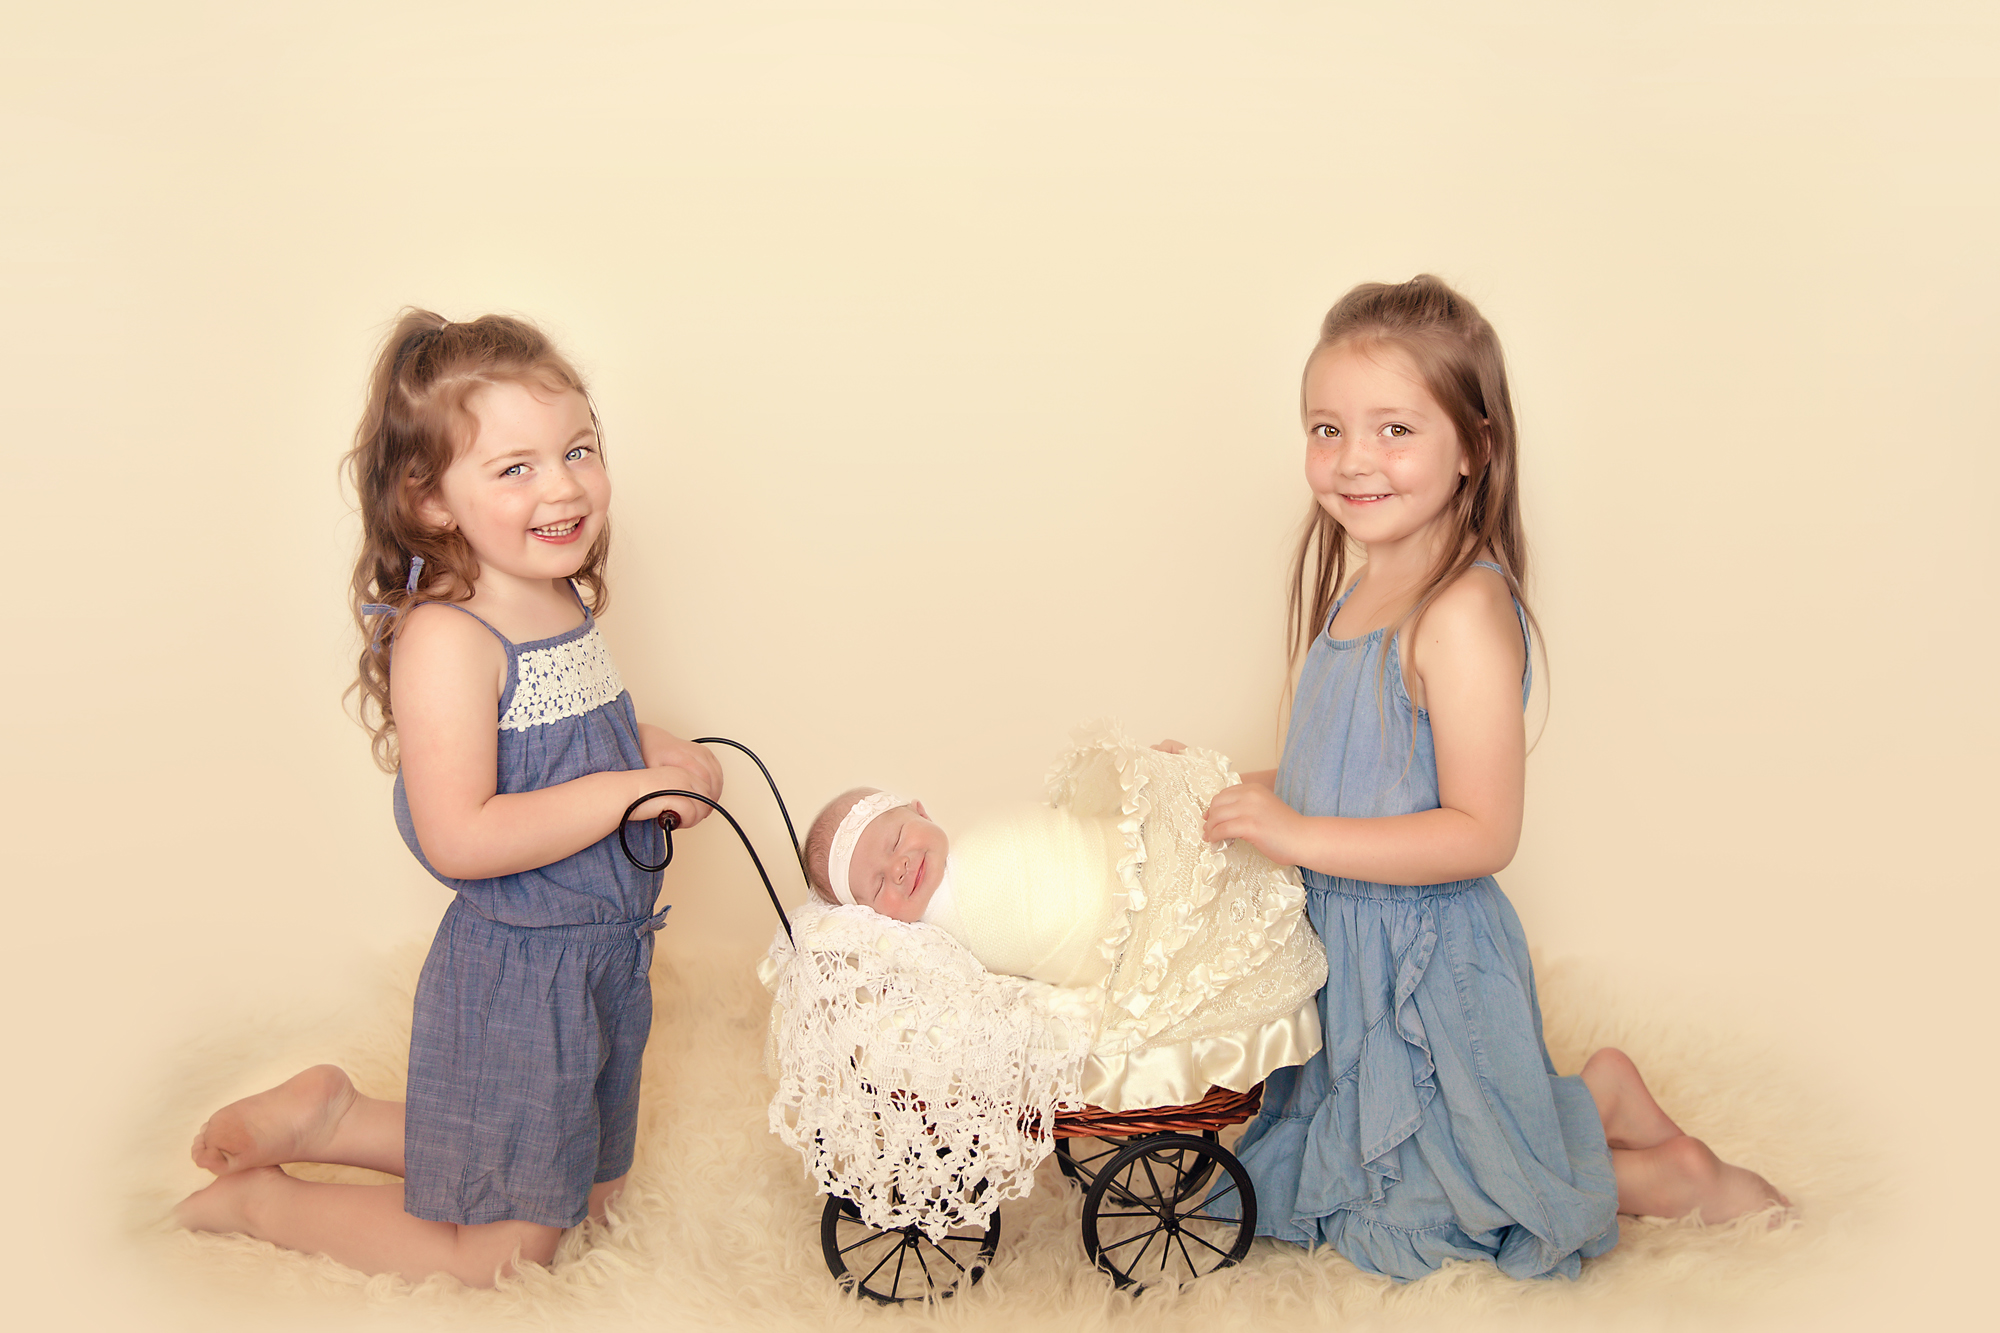 Newborn Photoshoot inspiration ideas. Calgary and Airdrie, Alberta Newborn and Baby photographer - Milashka Photography. Siblings shot - 2 sisters are holding a little pram where their newborn baby sister is sleeping. All 3 sisters are smiling.